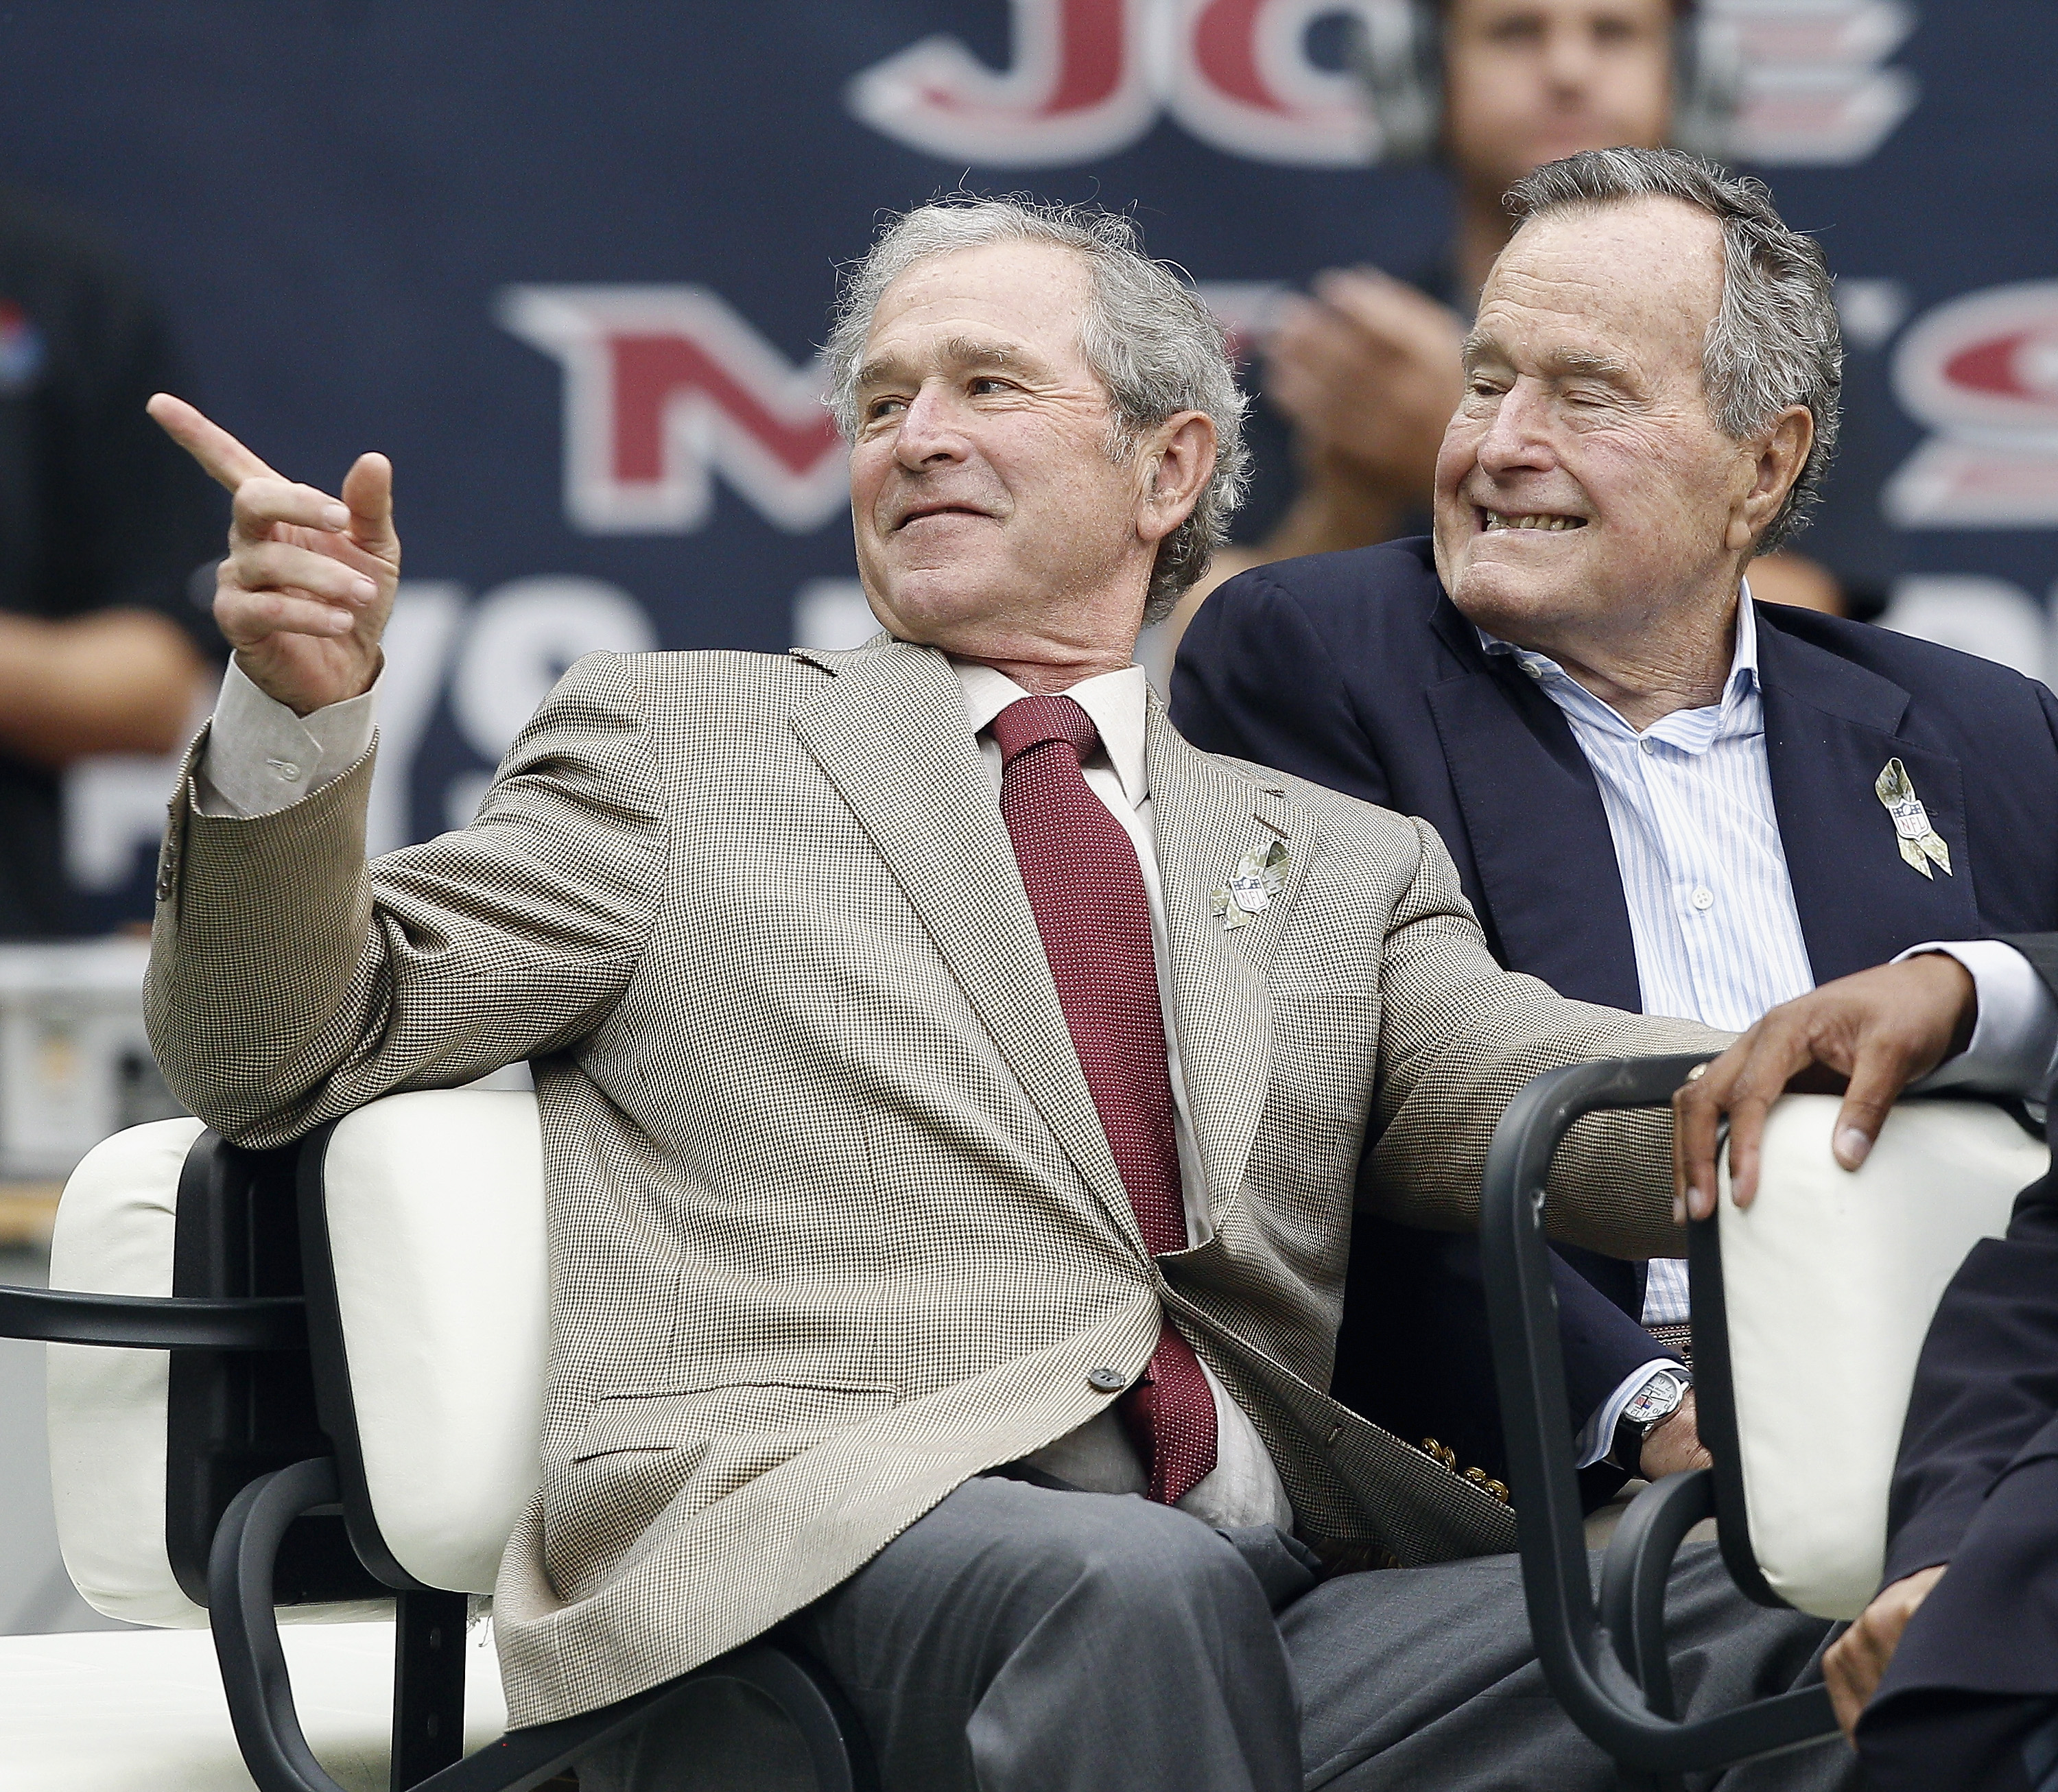 Former Presidents George W. Bush (L) and George H.W. Bush attend a game between the Oakland Raiders and Houston Texans at Reliant Stadium on November 17, 2013 in Houston, Texas.